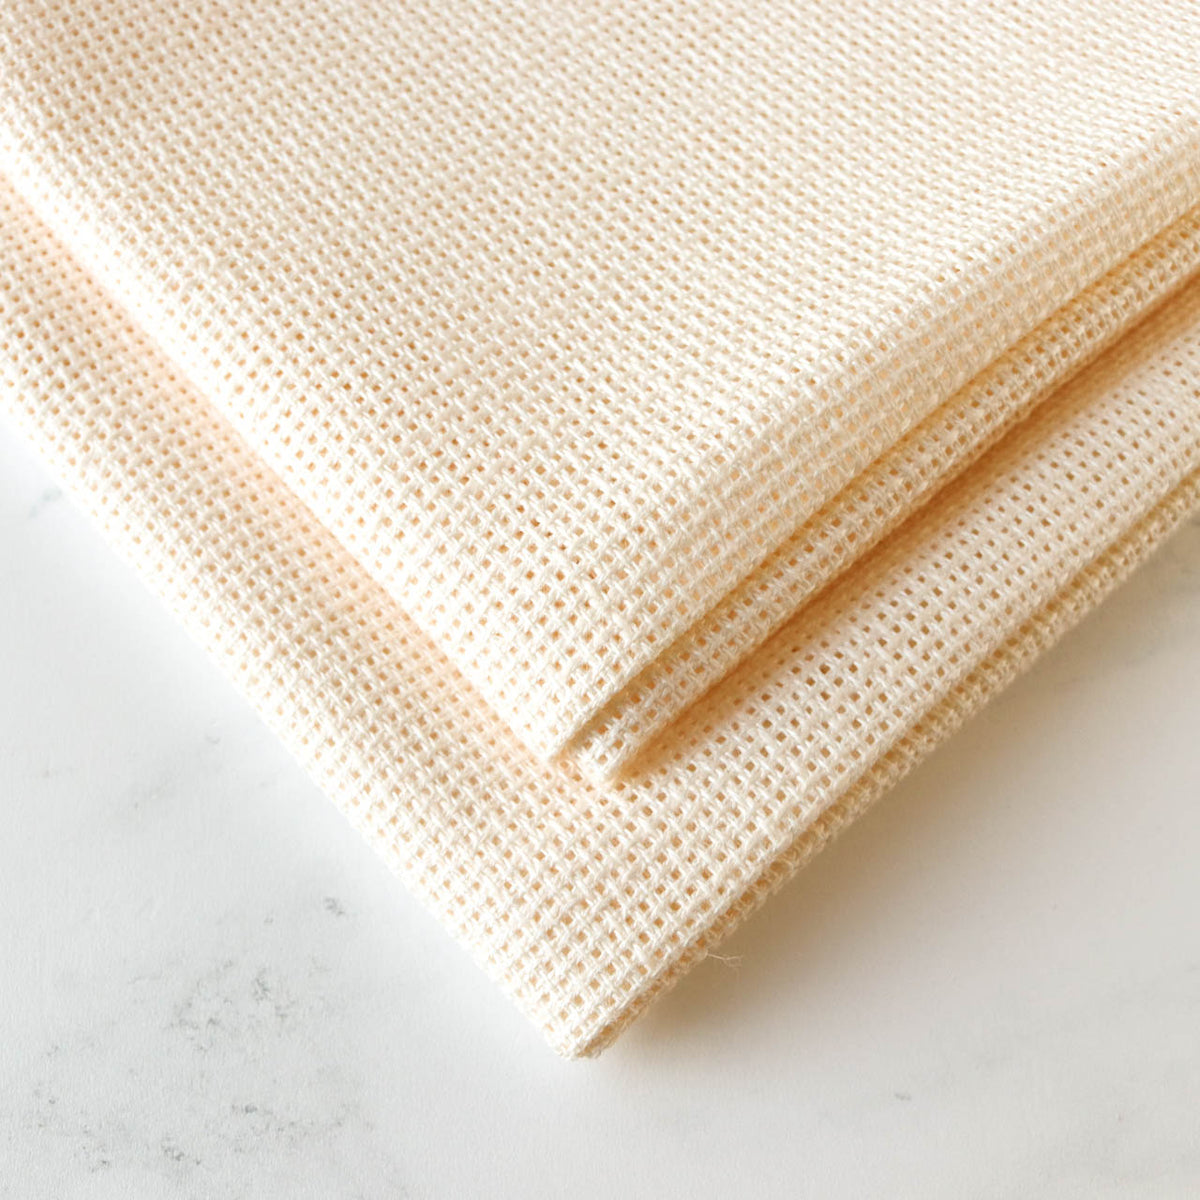 10-count Tula Cross Stitch Fabric - Cream